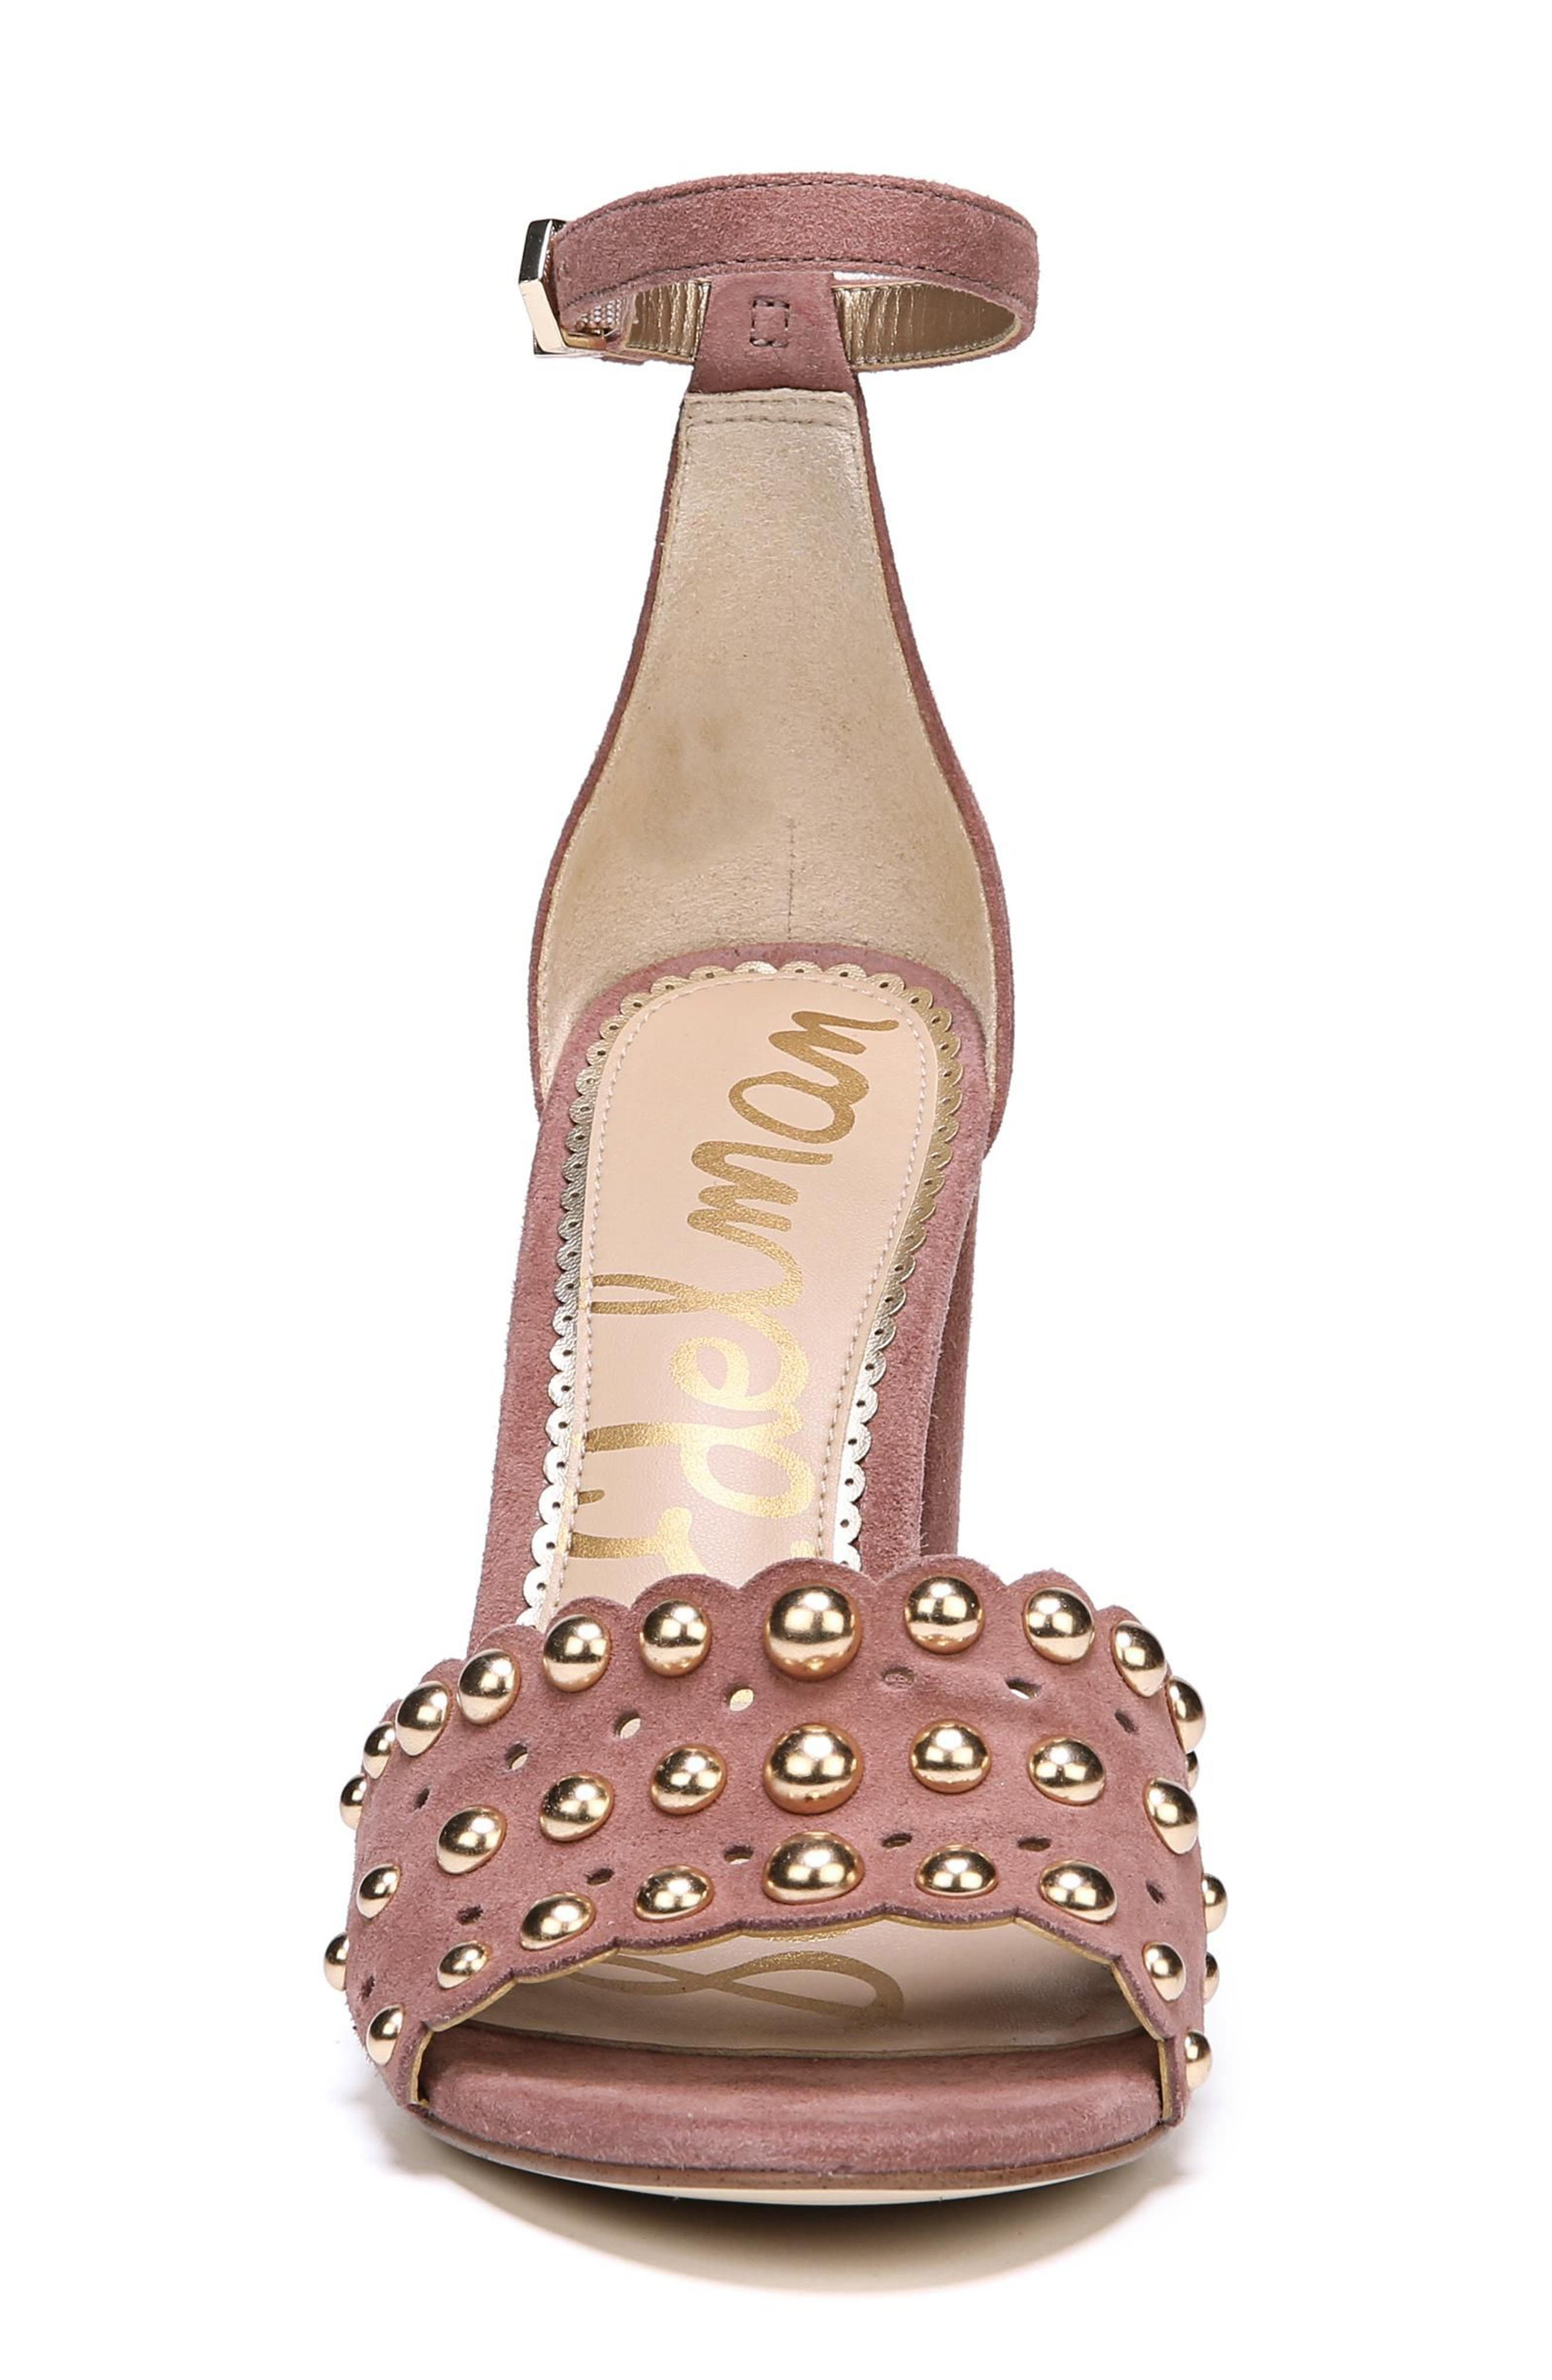 Yaria Studded Block Heel Sandal,                             Alternate thumbnail 4, color,                             Dusty Rose Suede